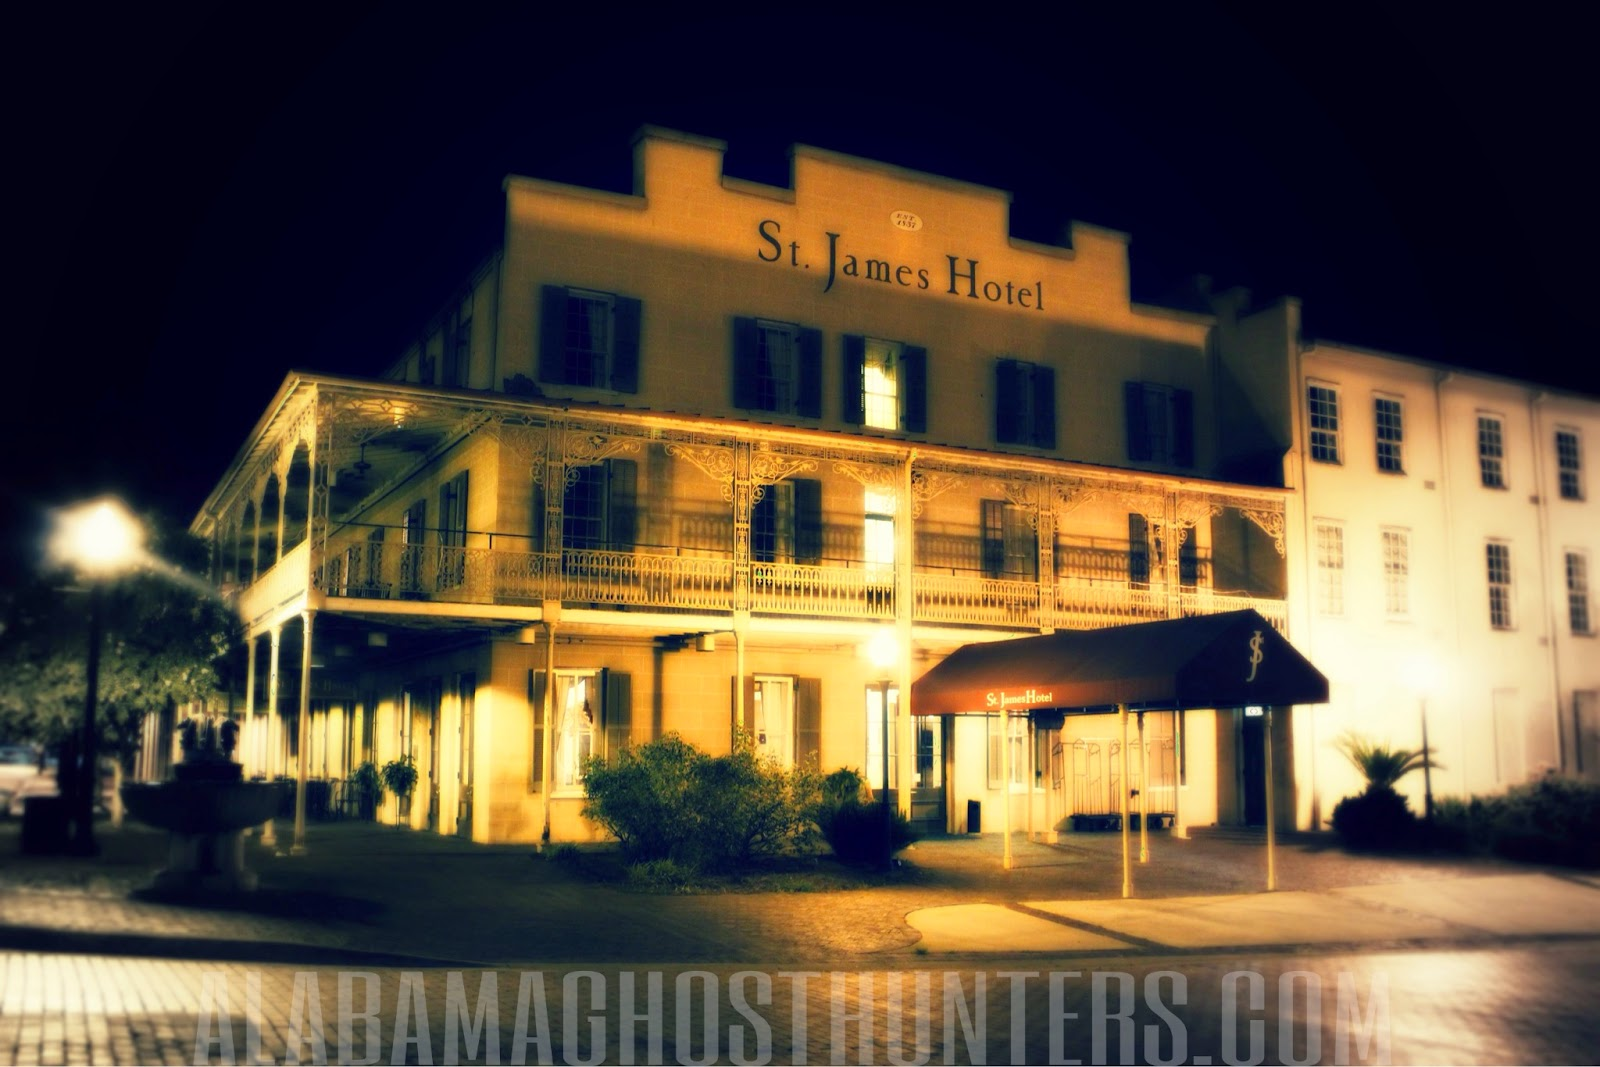 The Saint James Hotel Located In Selma Alabama Is One Of S Most Haunted Hotels Paranormal Phenomenon Here Often Ociated With